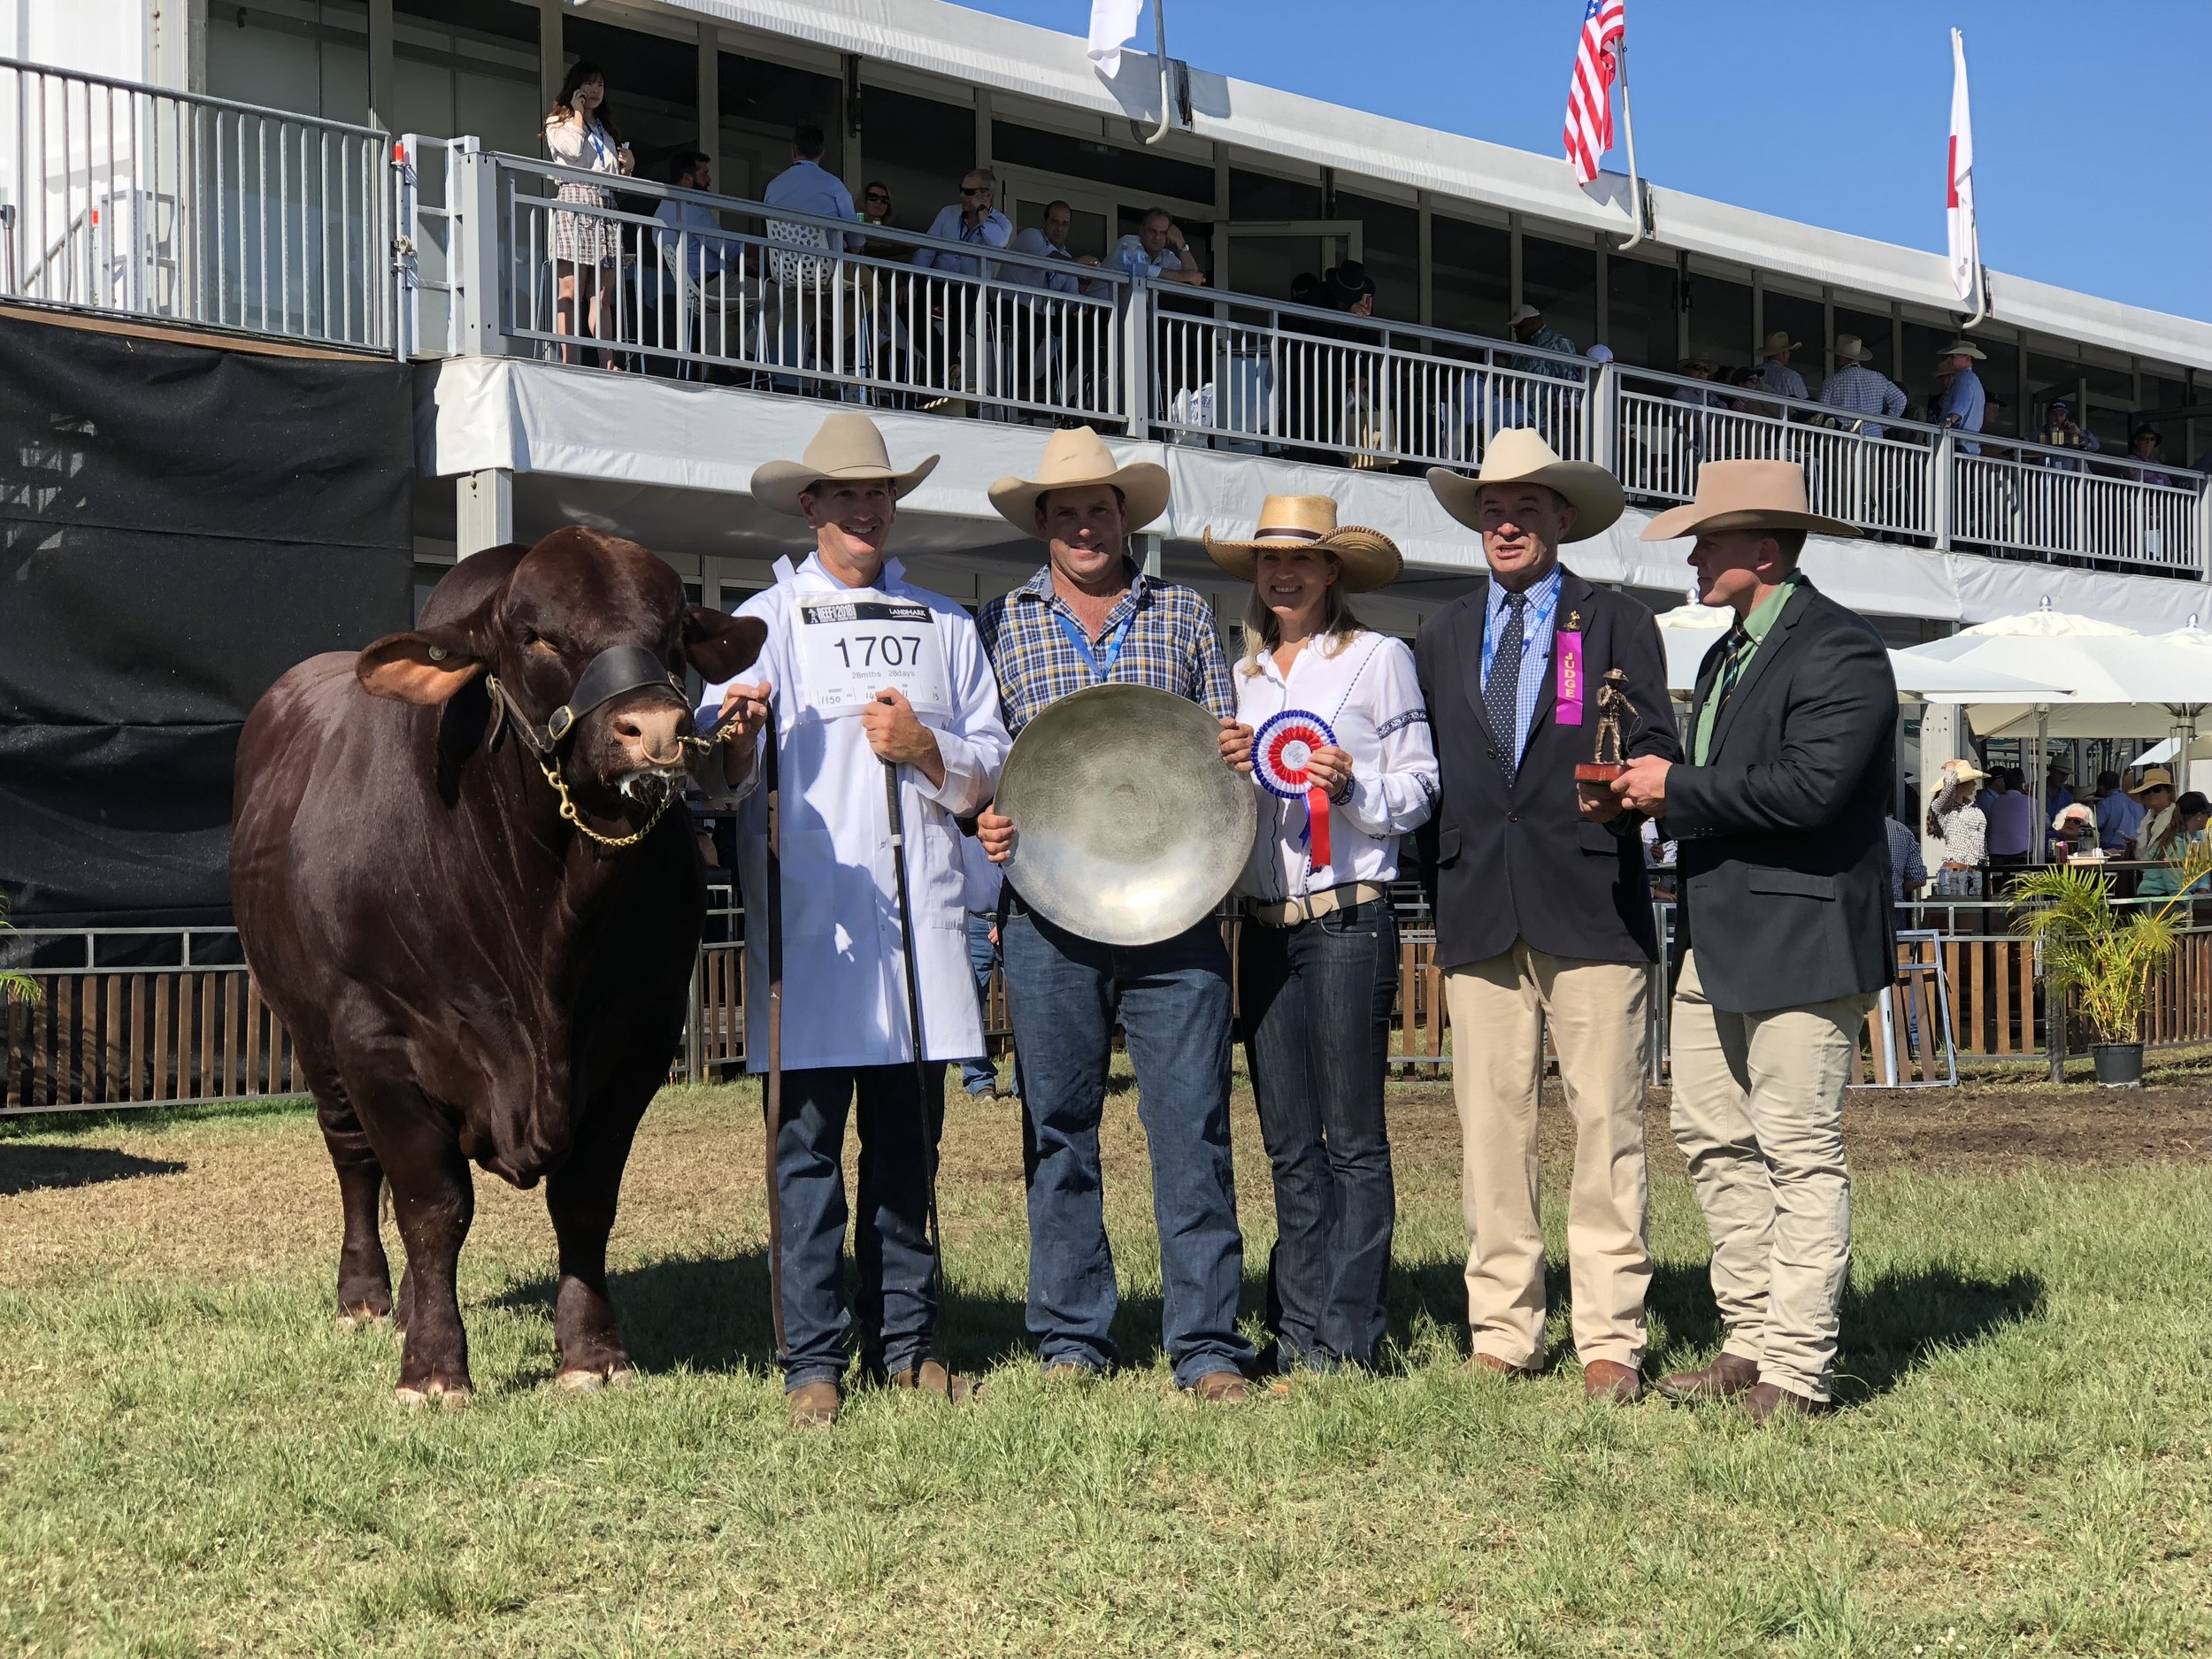 Grand Champion Santa Gertrudis Bull: Waco Massi. Led by David Bassingthwaighte, Trophy donors: Scott & Bec Dunlop with Judge David Bondfield and Colby Ede from Landmark.